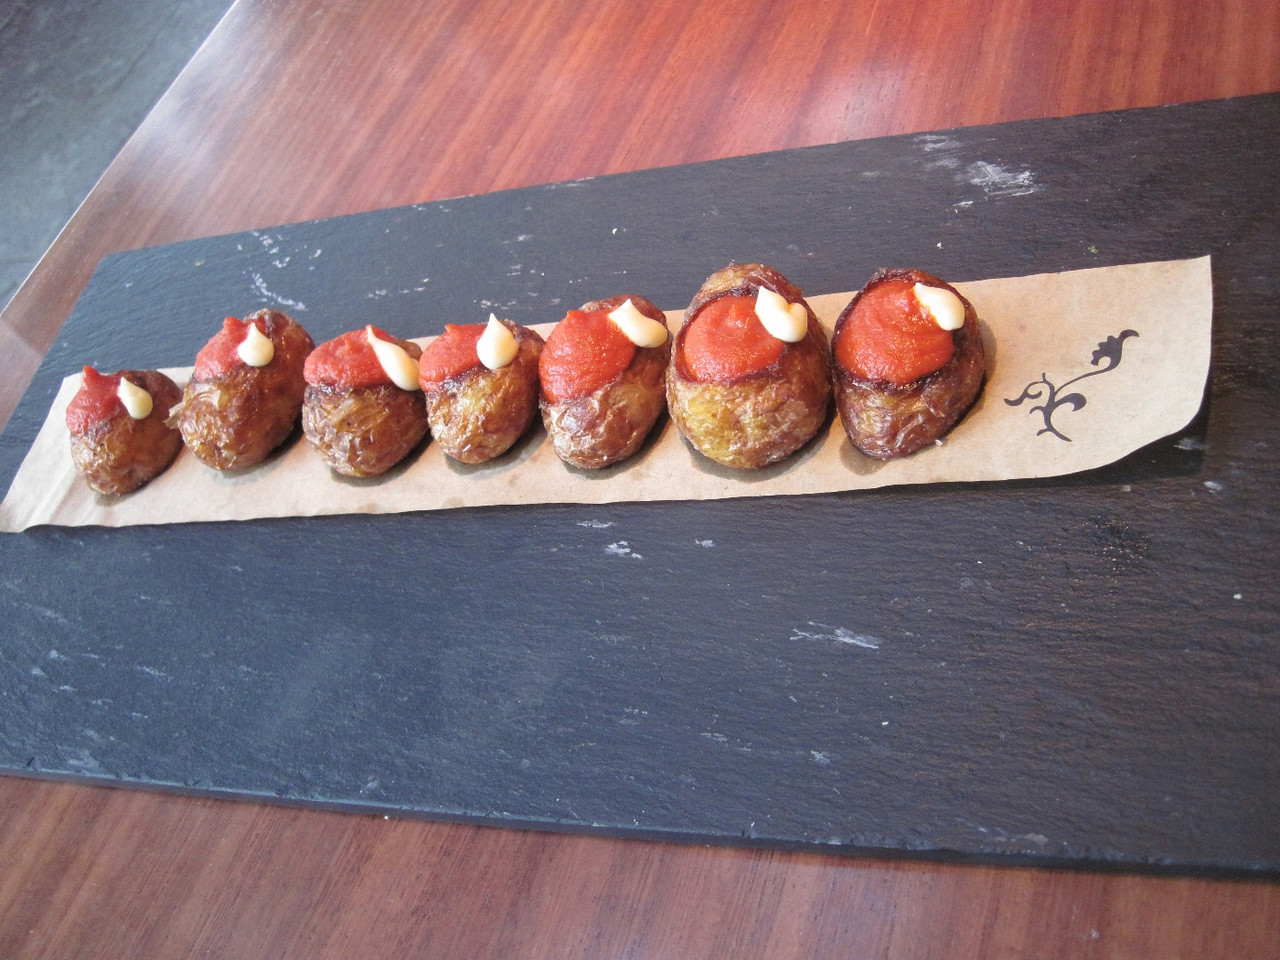 Patatas bravas. This was our first exposure to this tapa dish. This was by far the most elaborate presentation of this spicy potato dish.